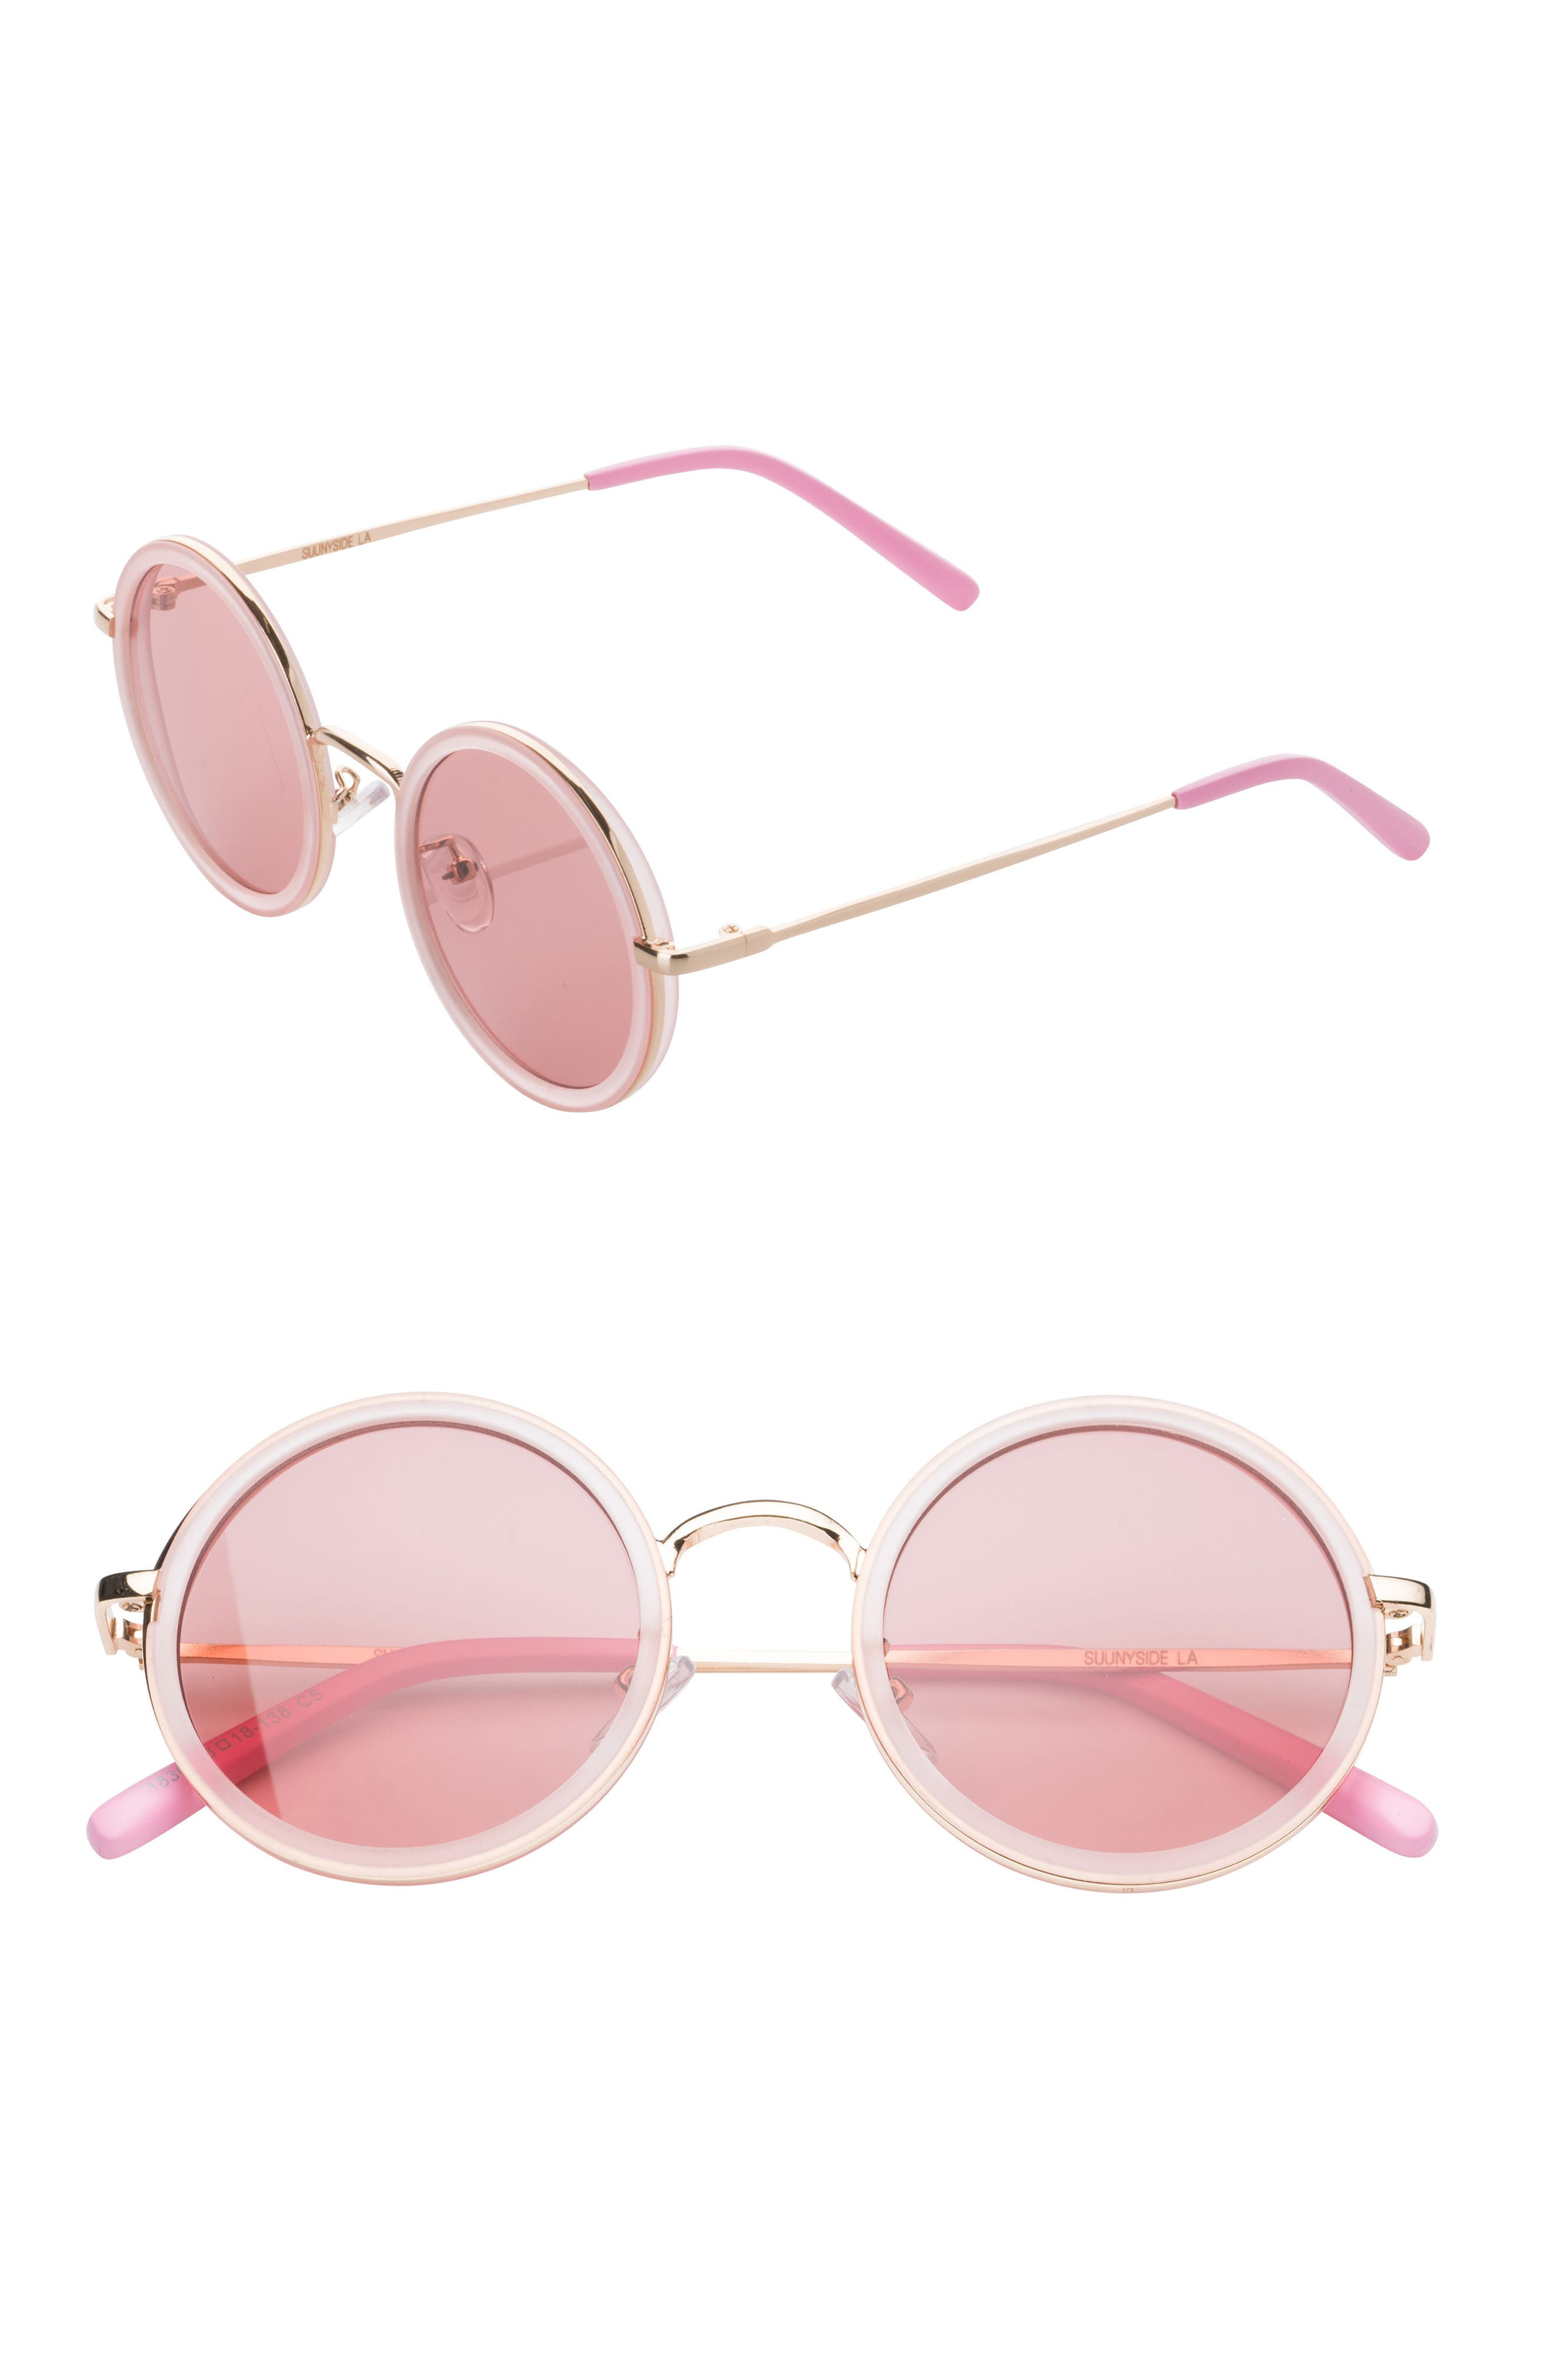 48mm Round Sunglasses,                         Main,                         color, 650